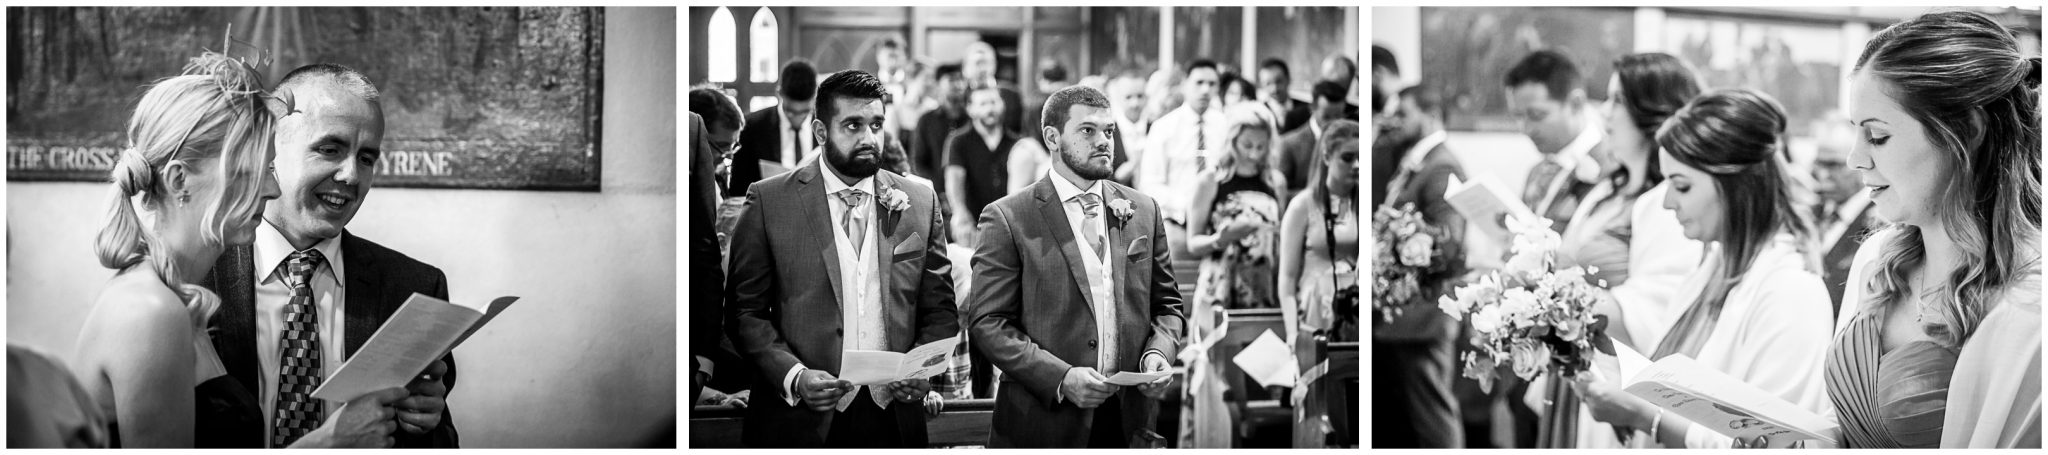 Black and white candid photographs of wedding service